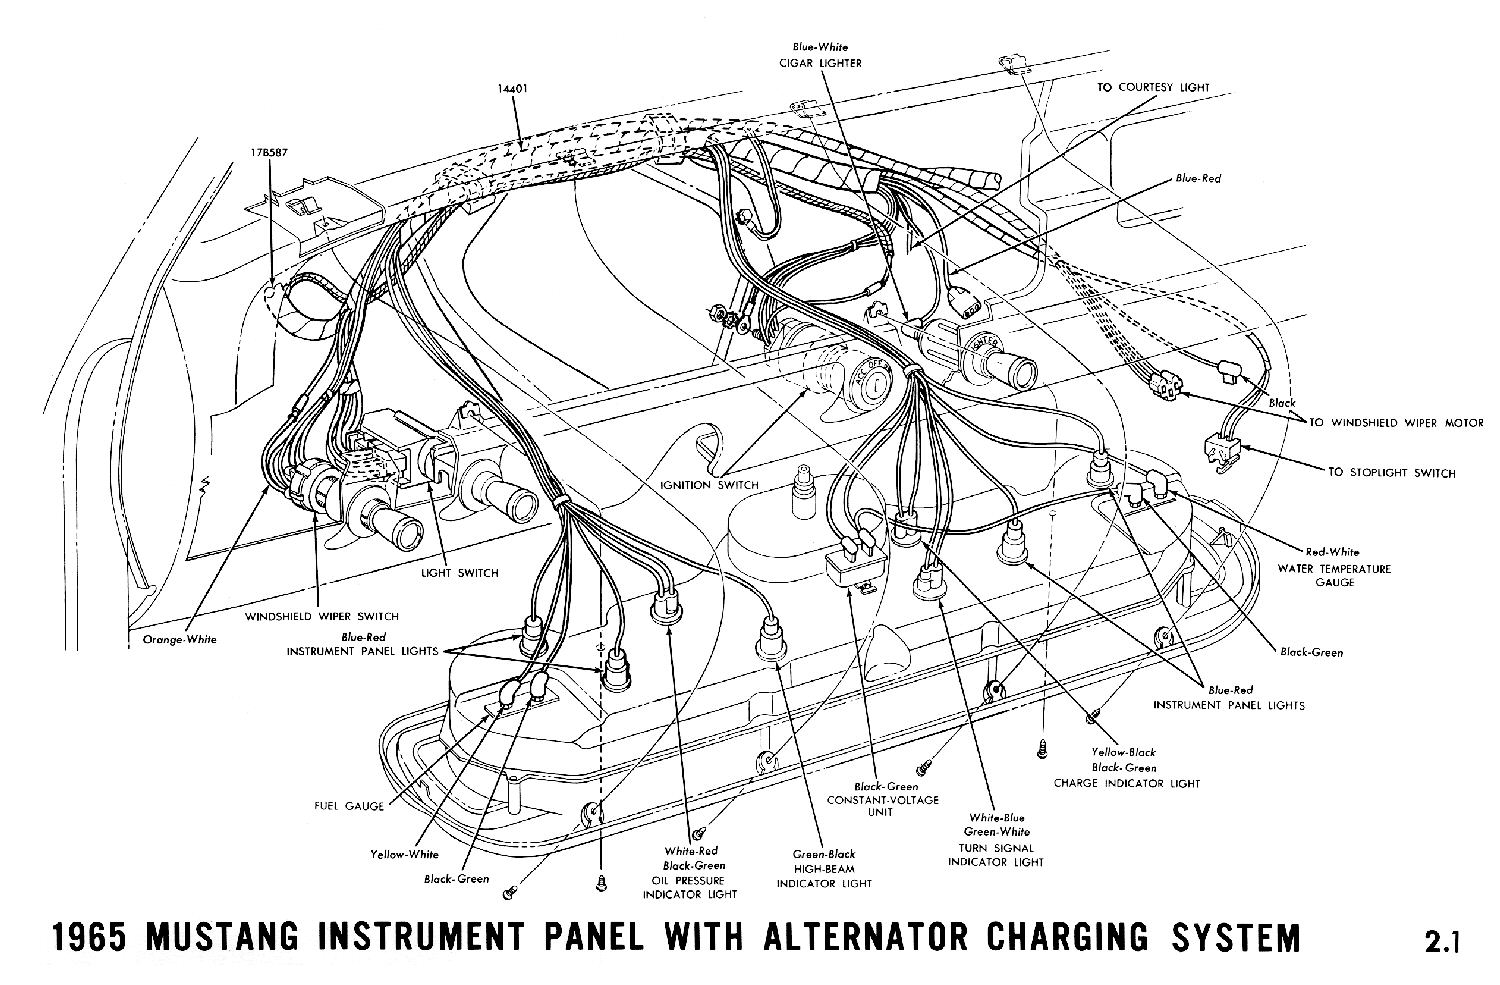 hight resolution of 1965 mustang wiring diagrams average joe restoration 1987 ford mustang headlight wiring diagram 2002 ford mustang headlight wiring diagram image details